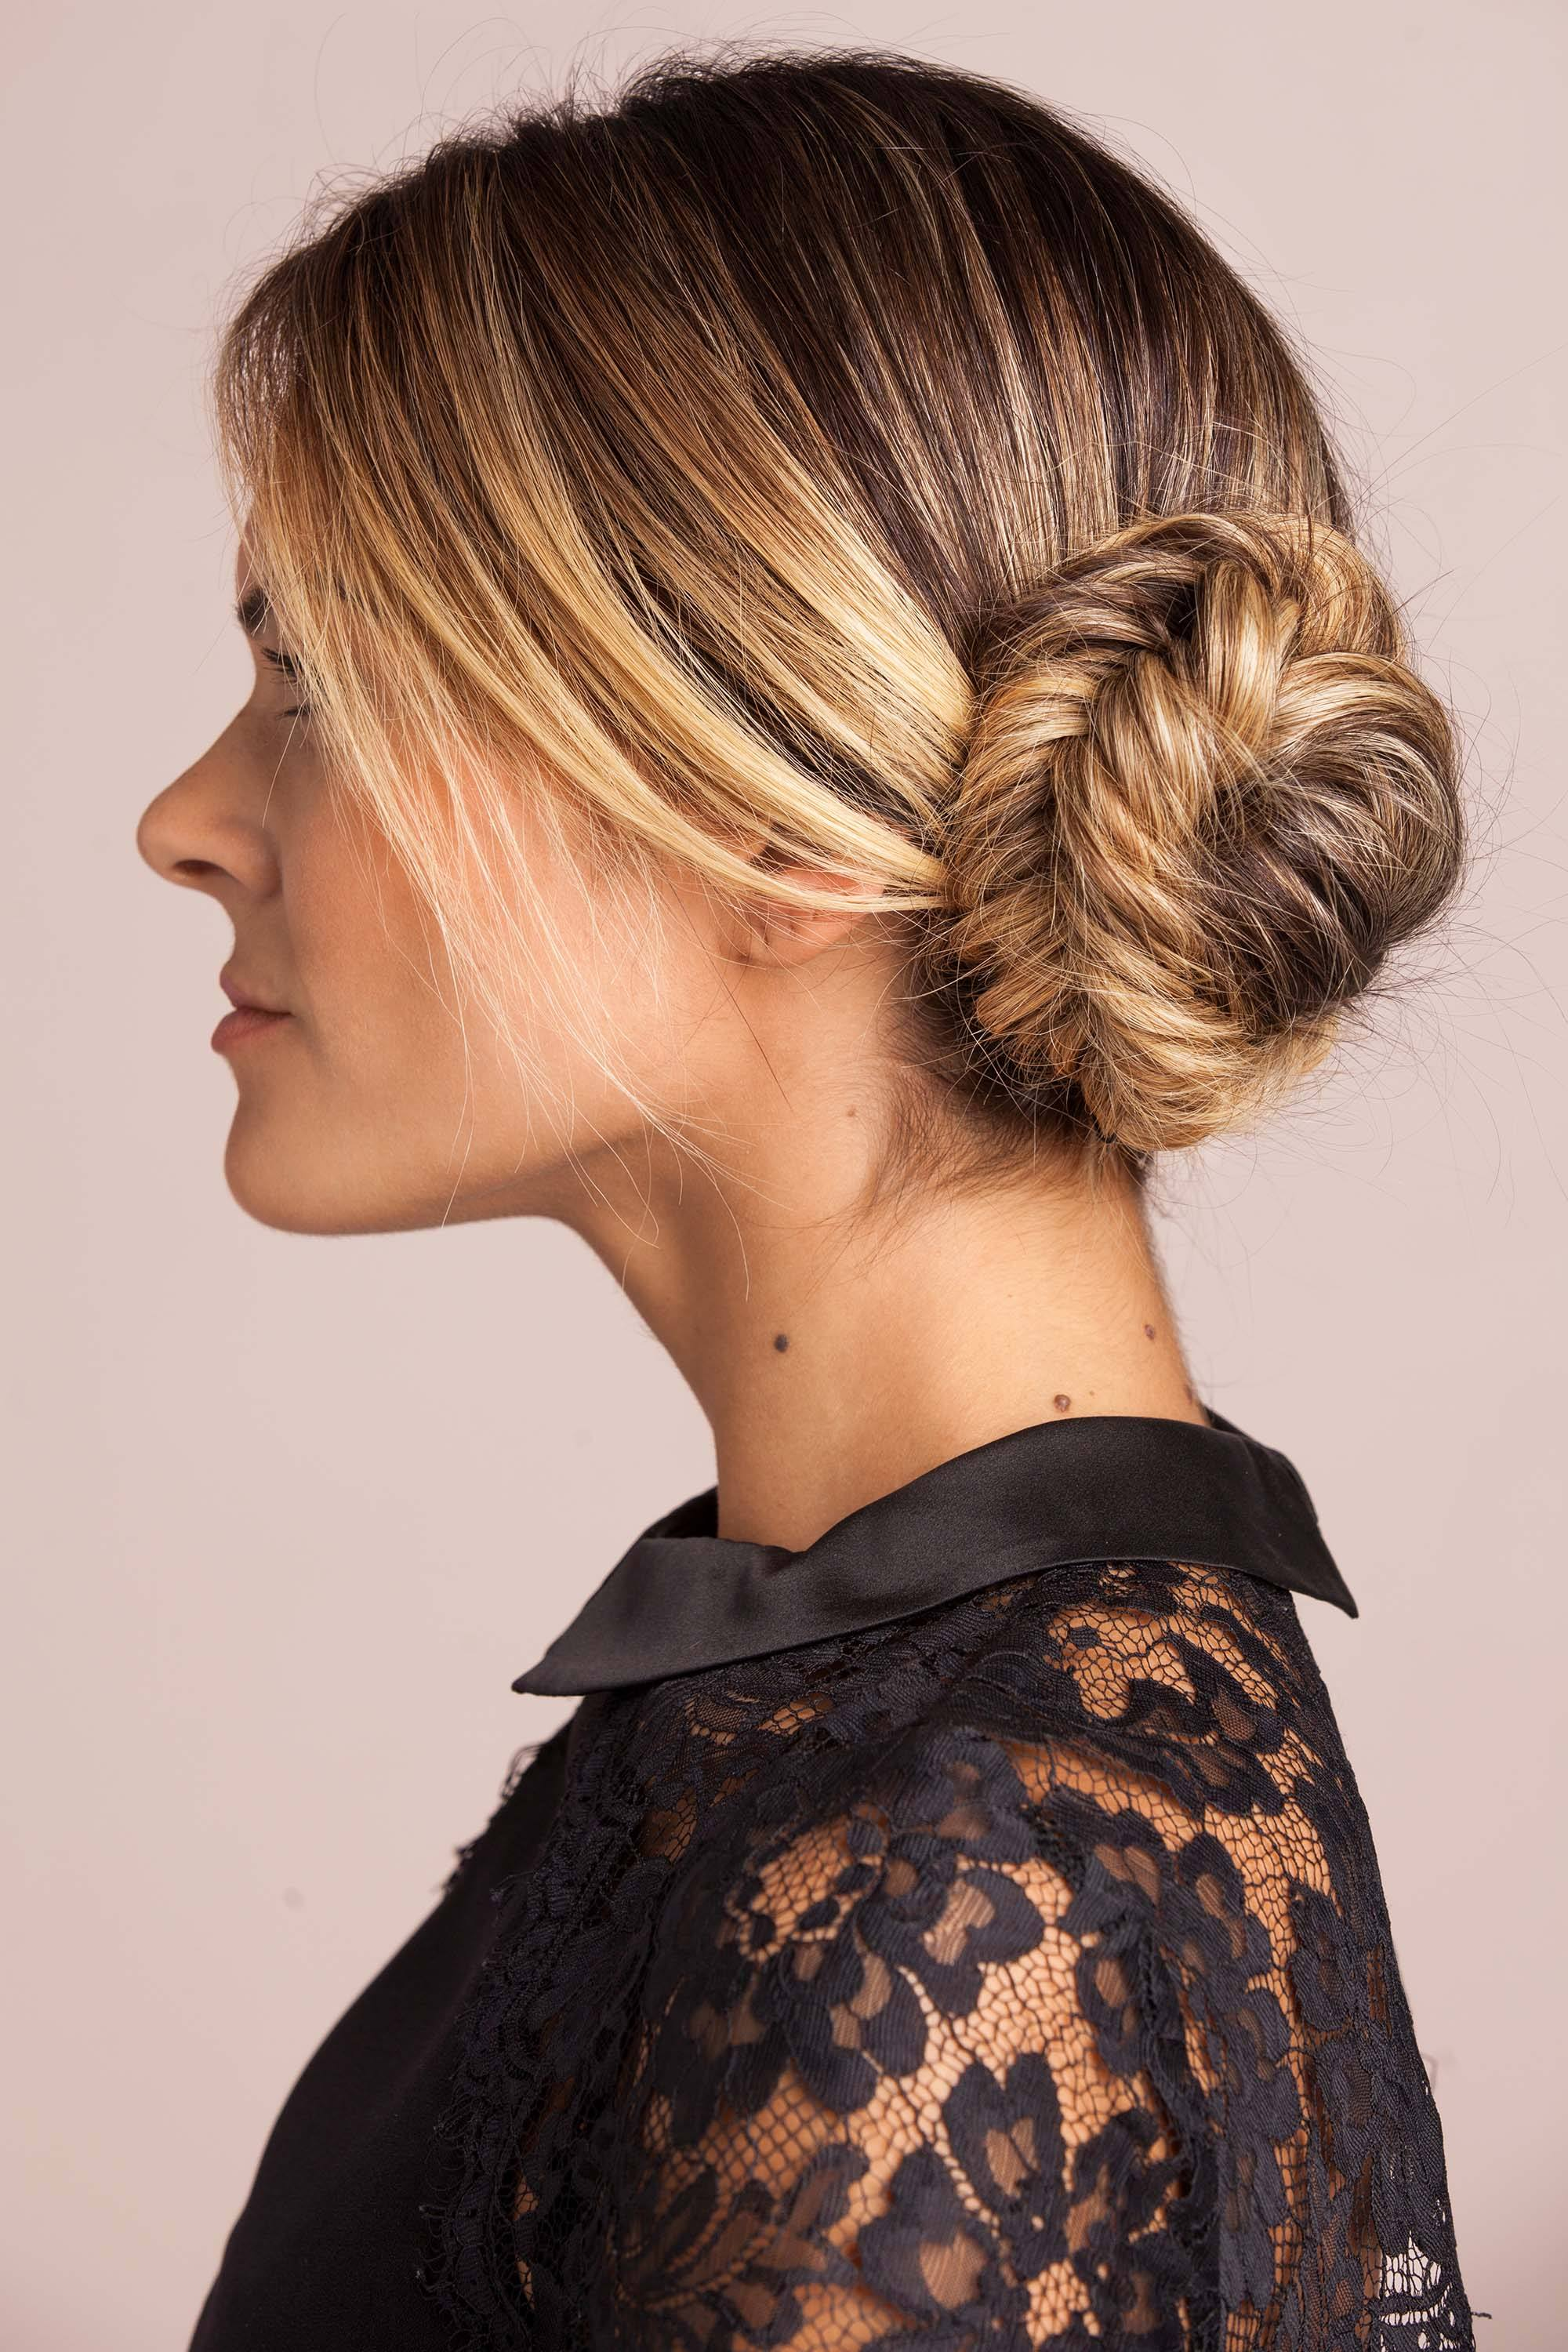 8 Formal Hairstyles for Long Hair to Wear This Winter